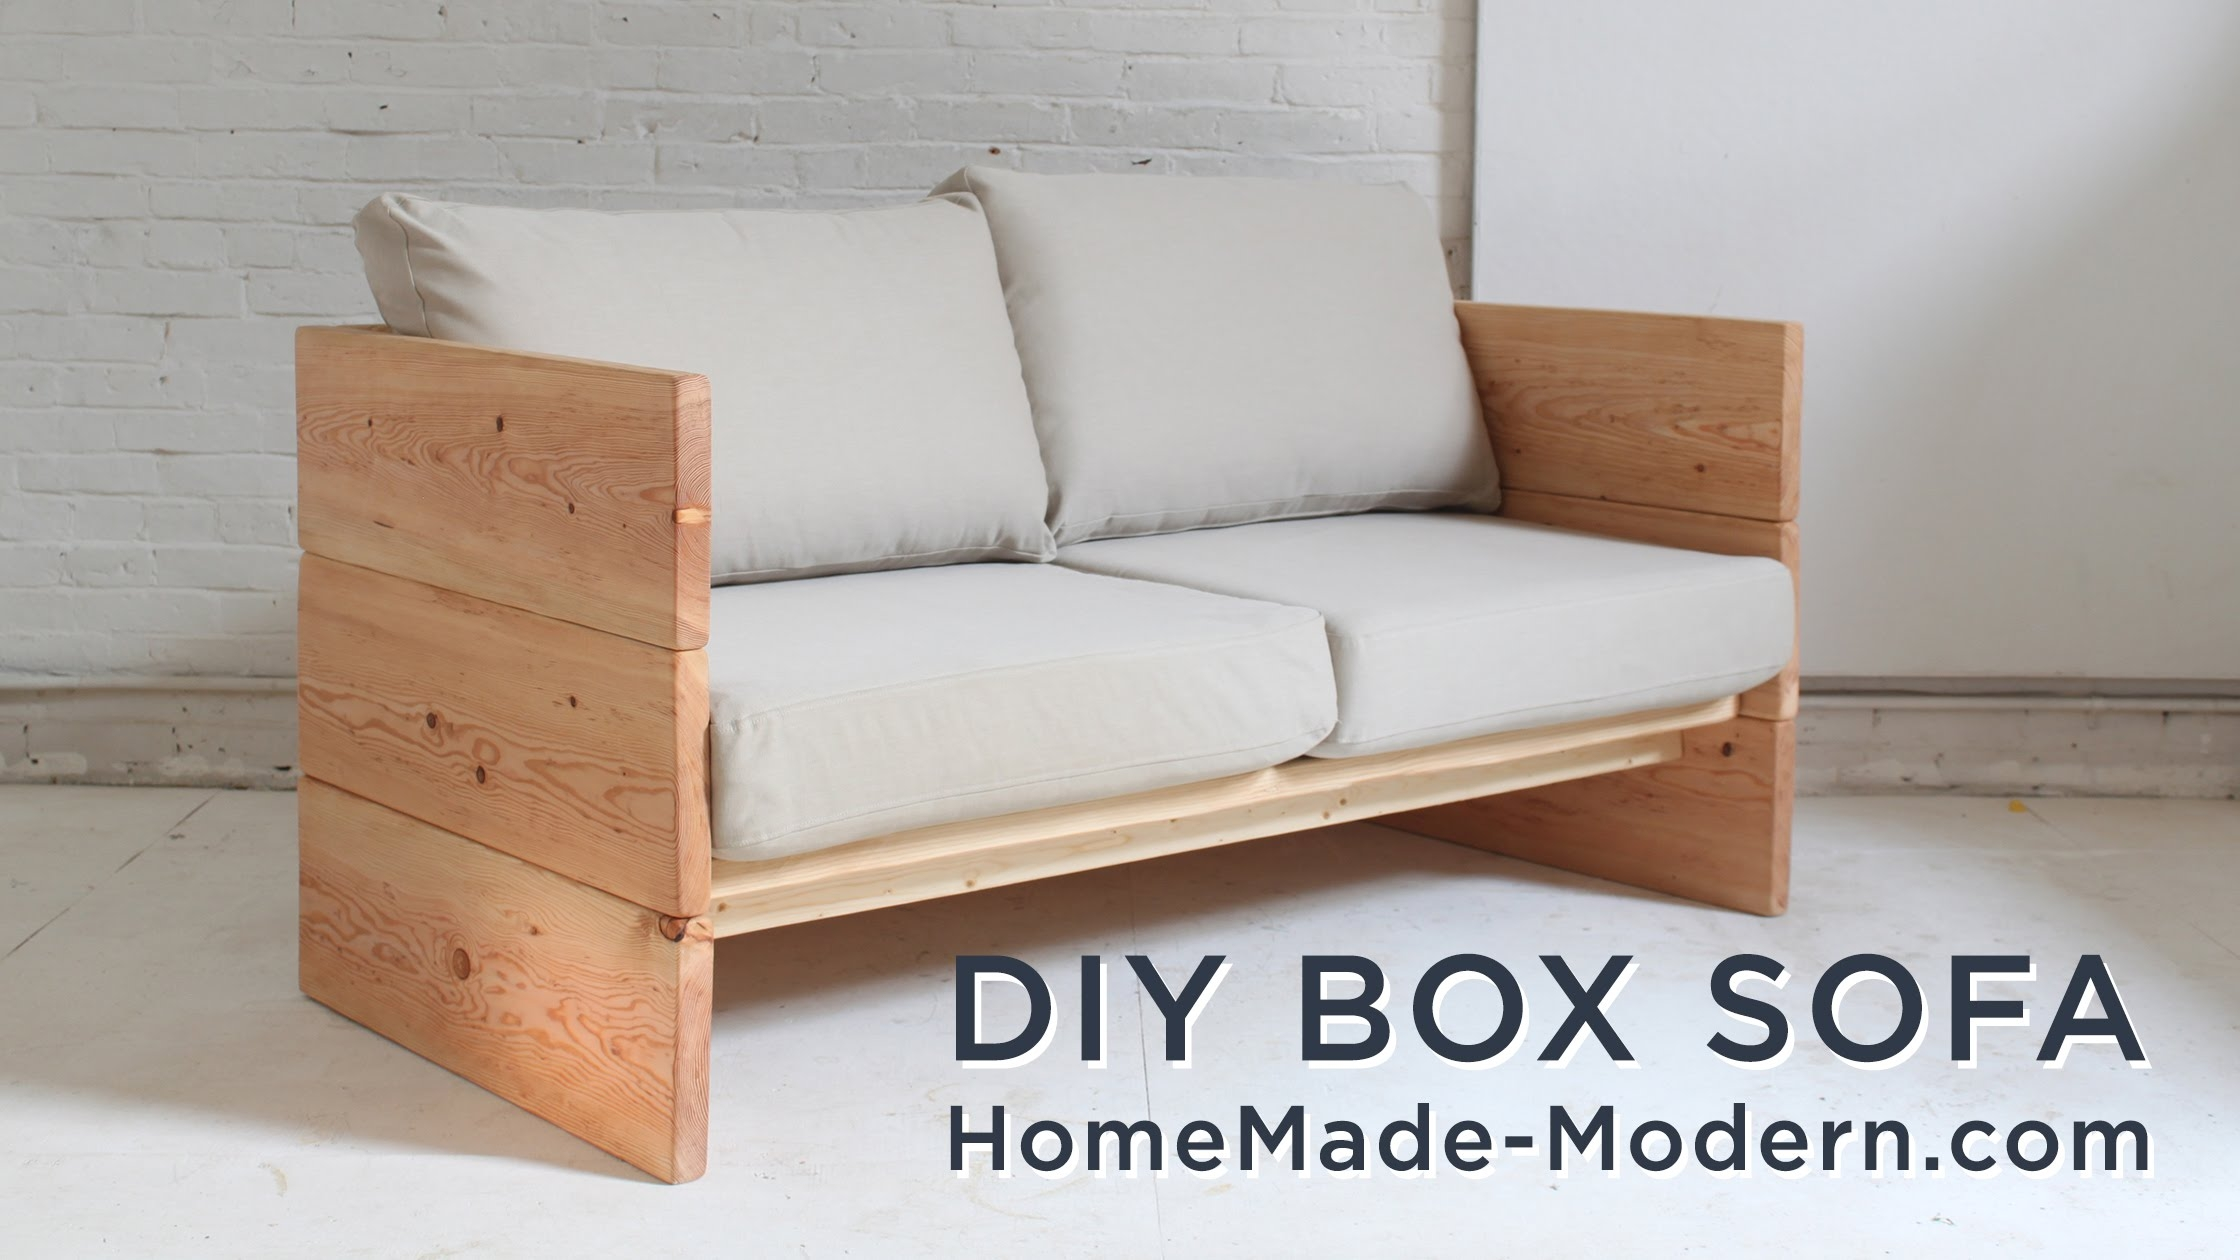 Diy Sofa Made Out Of 2x10s Furniture Fun Pinterest Diy Sofa Intended For Diy Sectional Sofa Plans (Image 10 of 15)